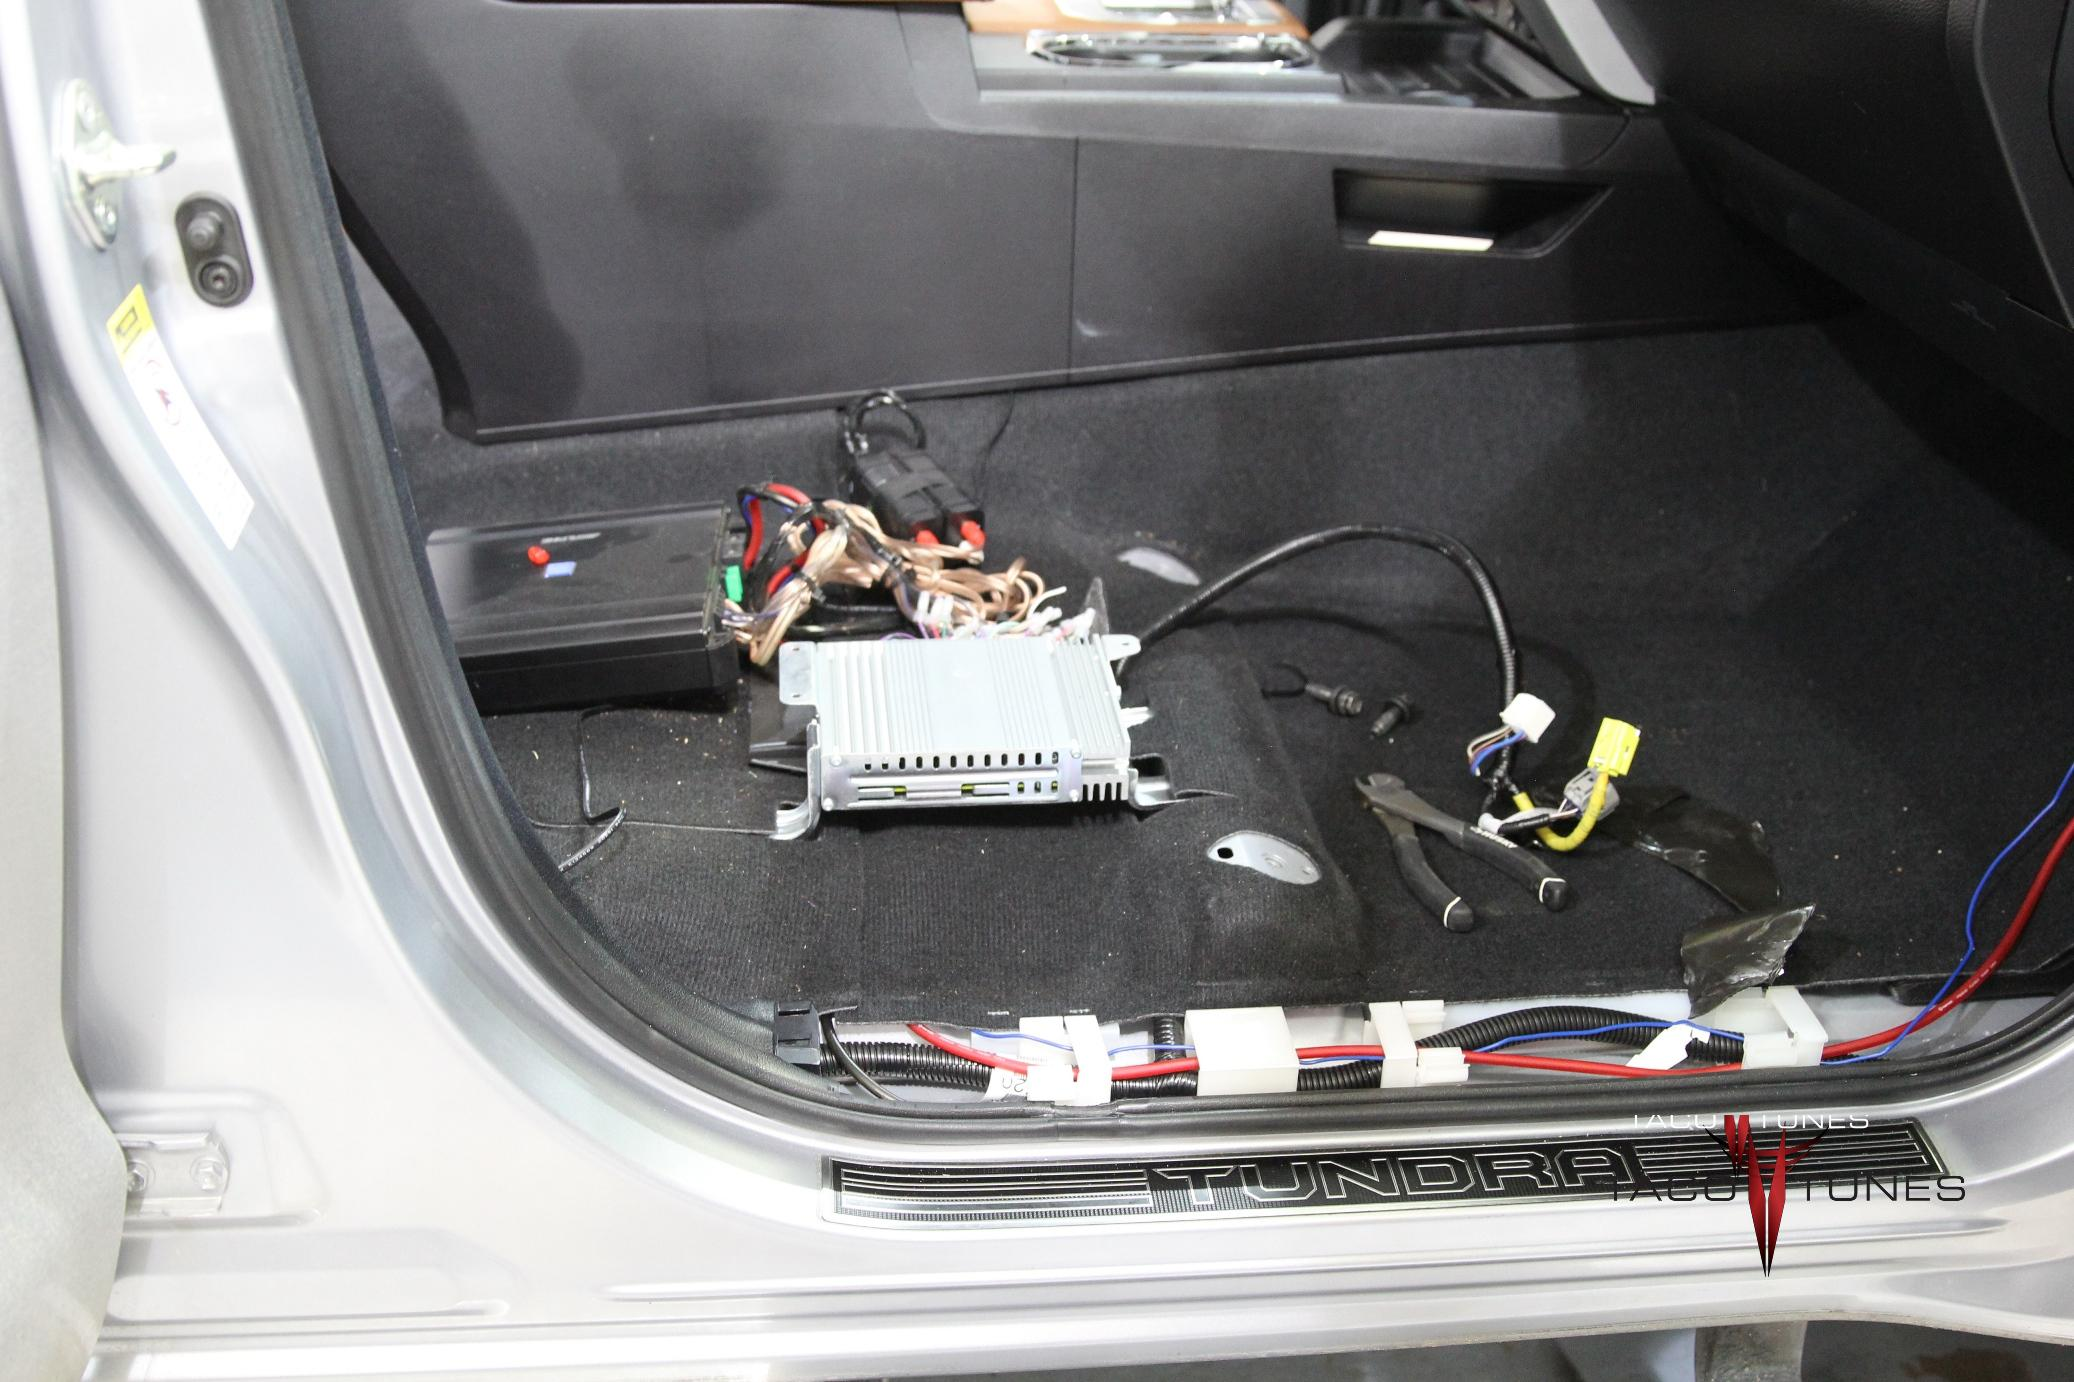 toyota tundra jbl wiring harness repair before picture 0. Black Bedroom Furniture Sets. Home Design Ideas